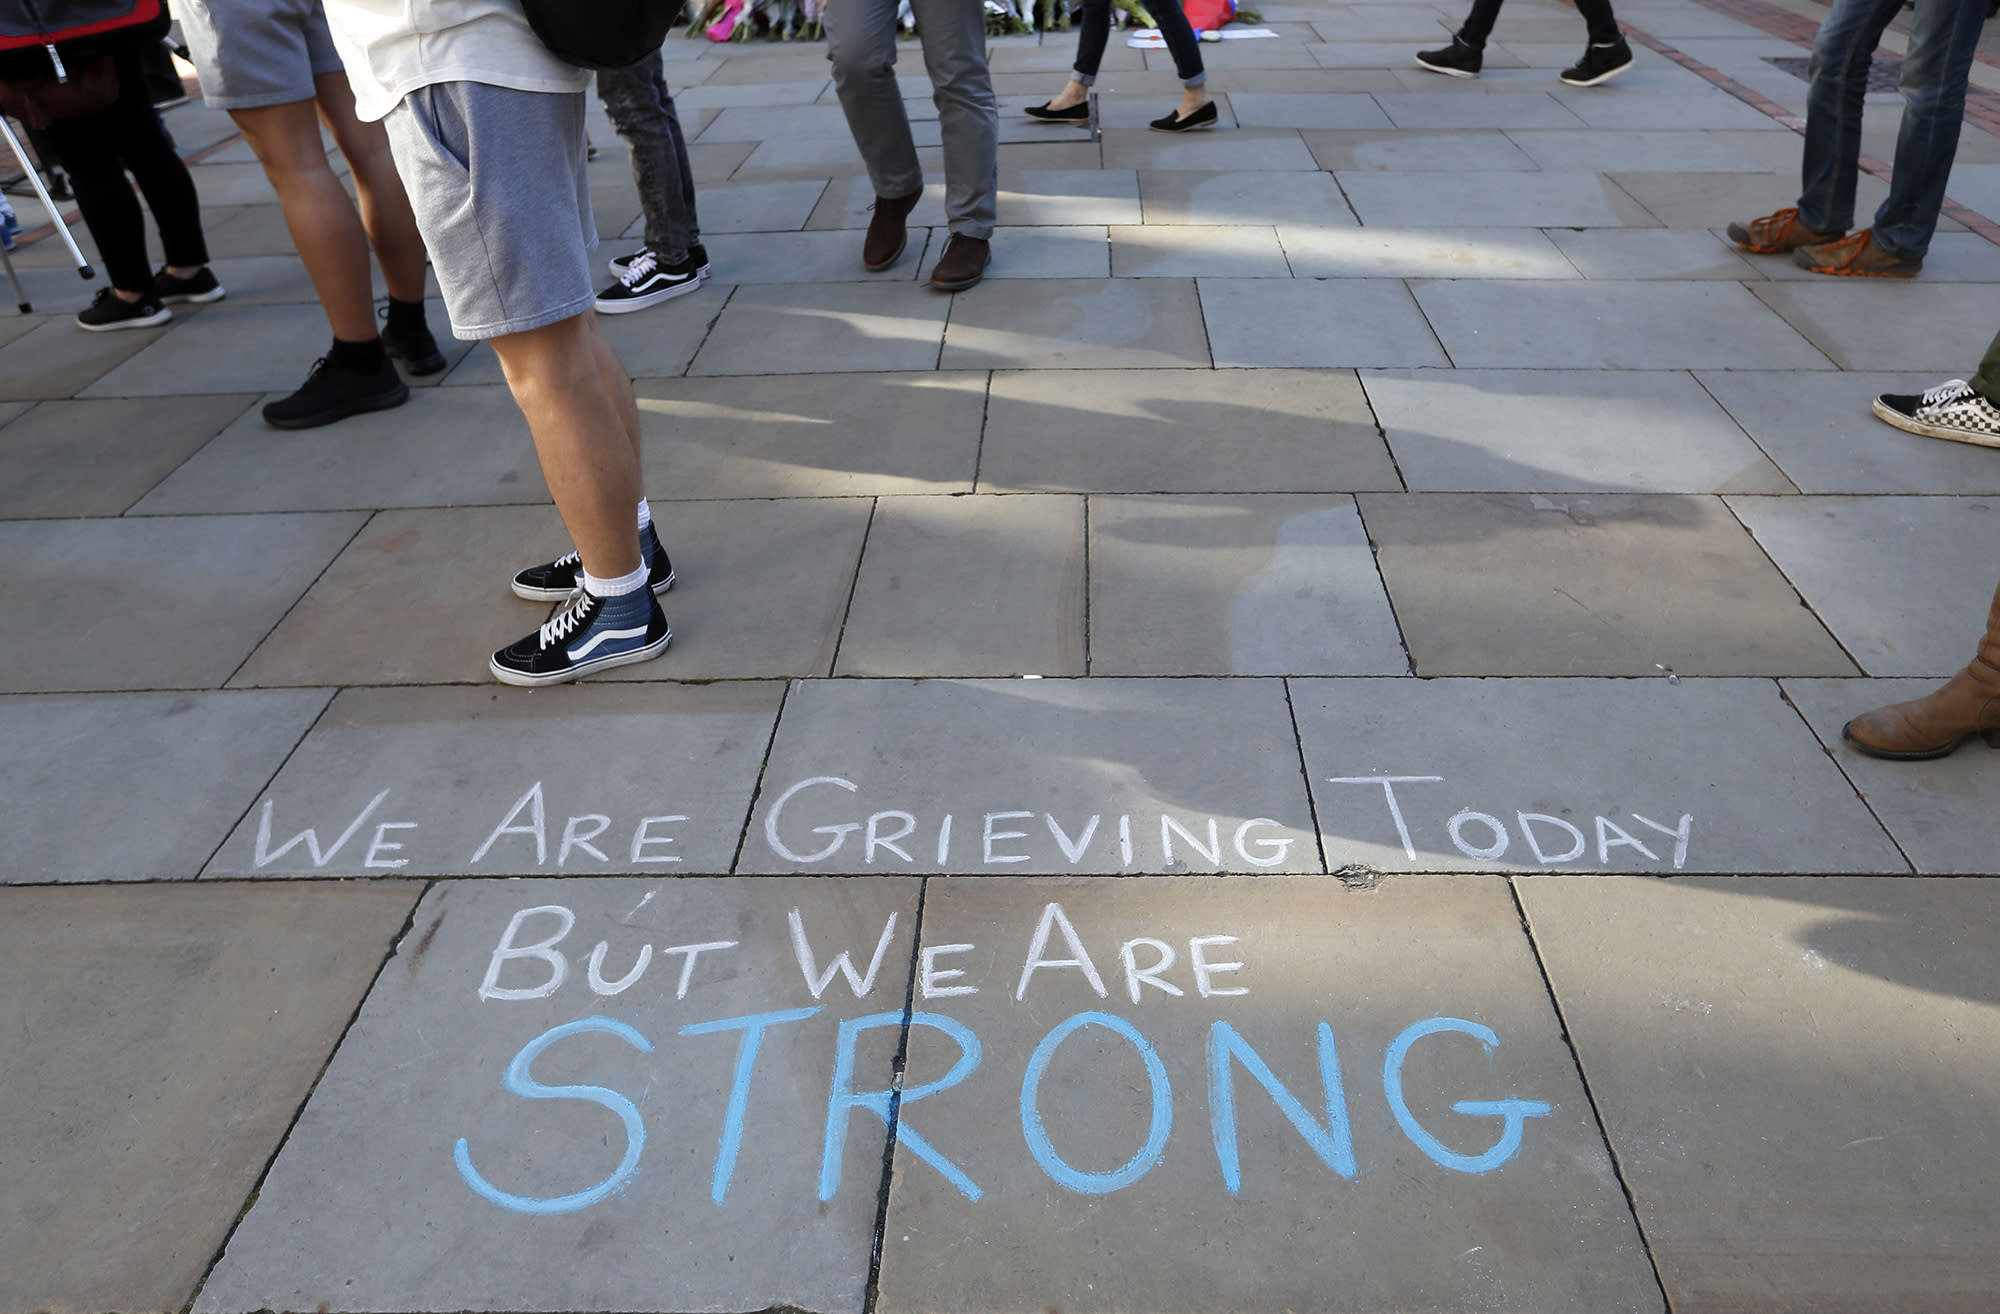 A message is written on the pavement in Manchester, England, Tuesday May 23, 2017, the day after the suicide attack at an Ariana Grande concert that left 22 people dead as it ended on Monday night. (Photo: Kirsty Wigglesworth)